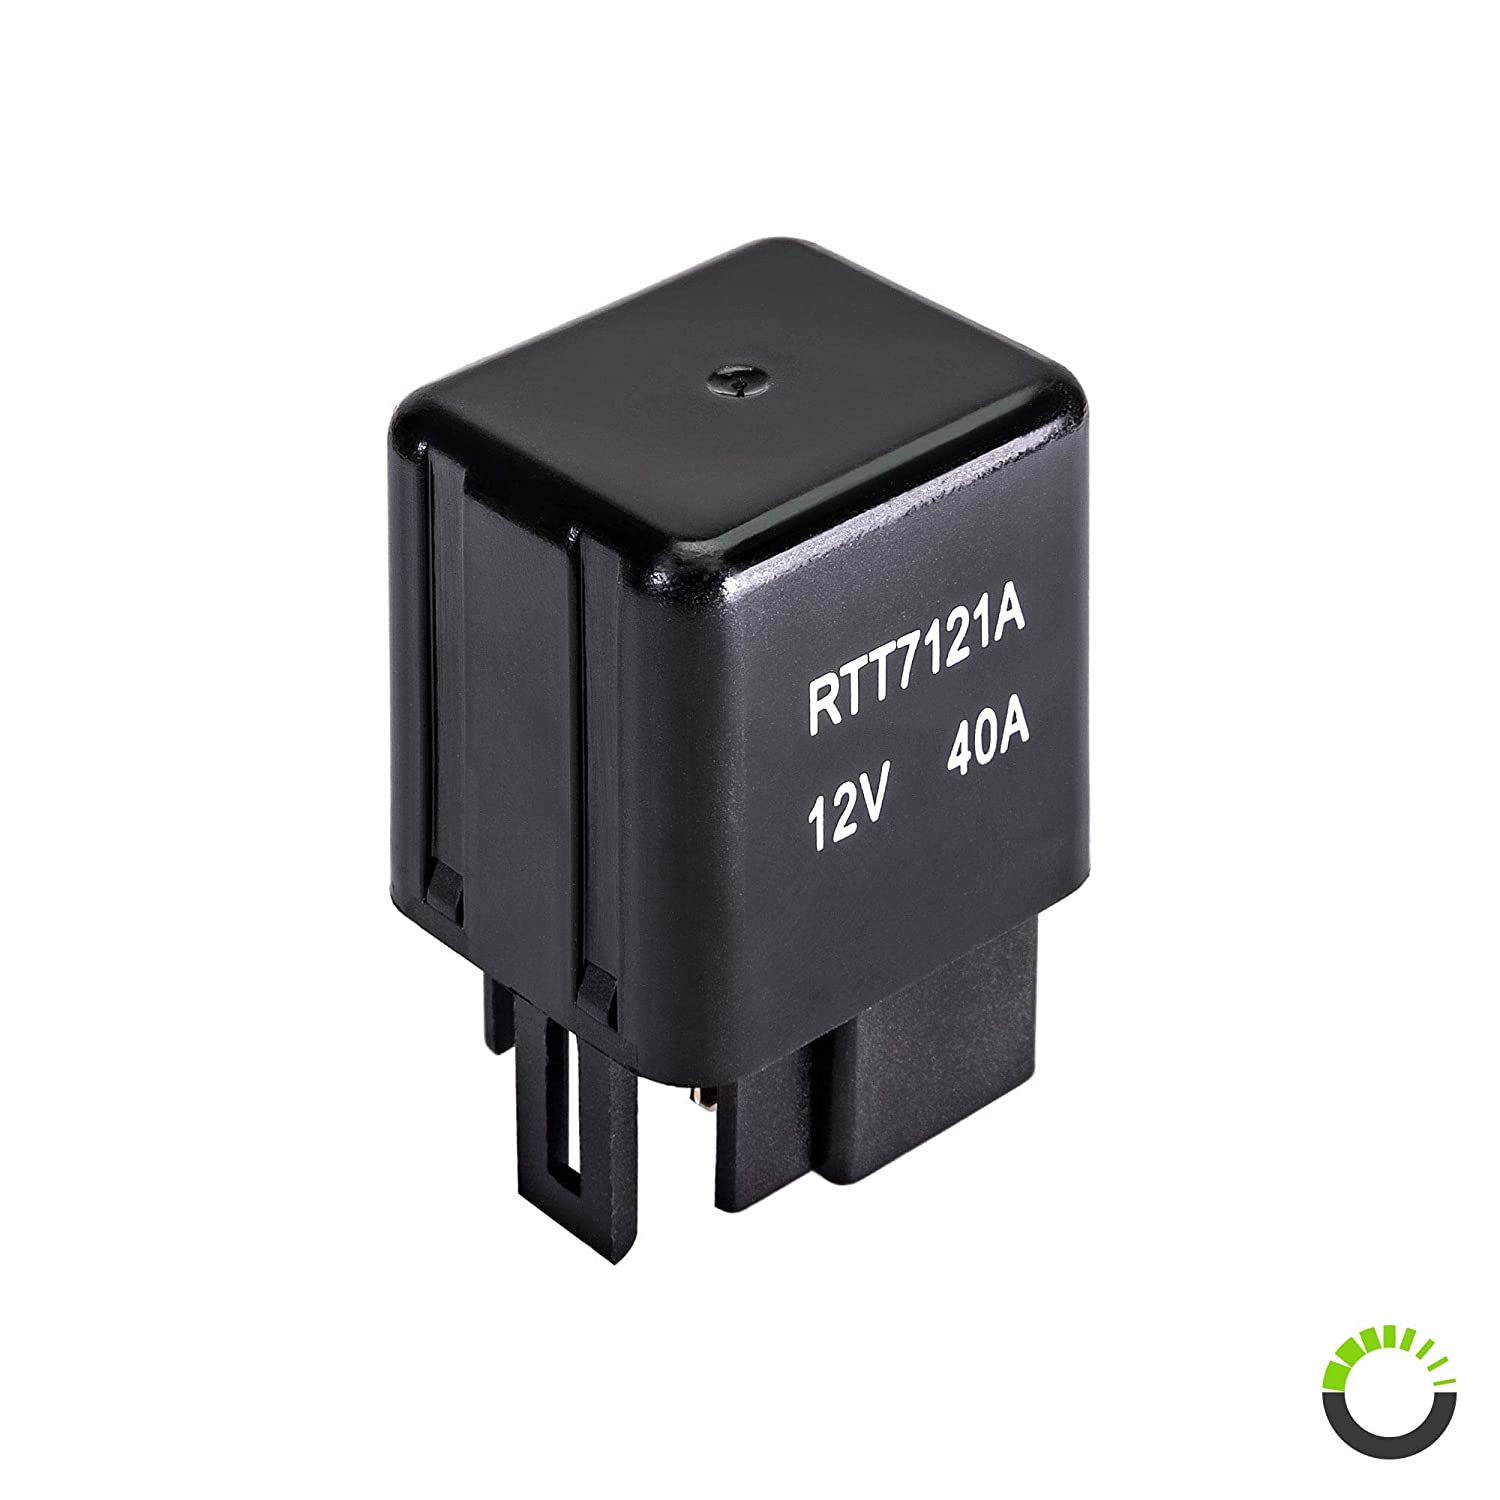 ONLINE LED STORE RTT7121A 12V 40A 4-Pin Relay [Direct Replacement]  [Mechanical Relay] [Single Pole Single Throw] - Replacement for Toyota  90987-02006